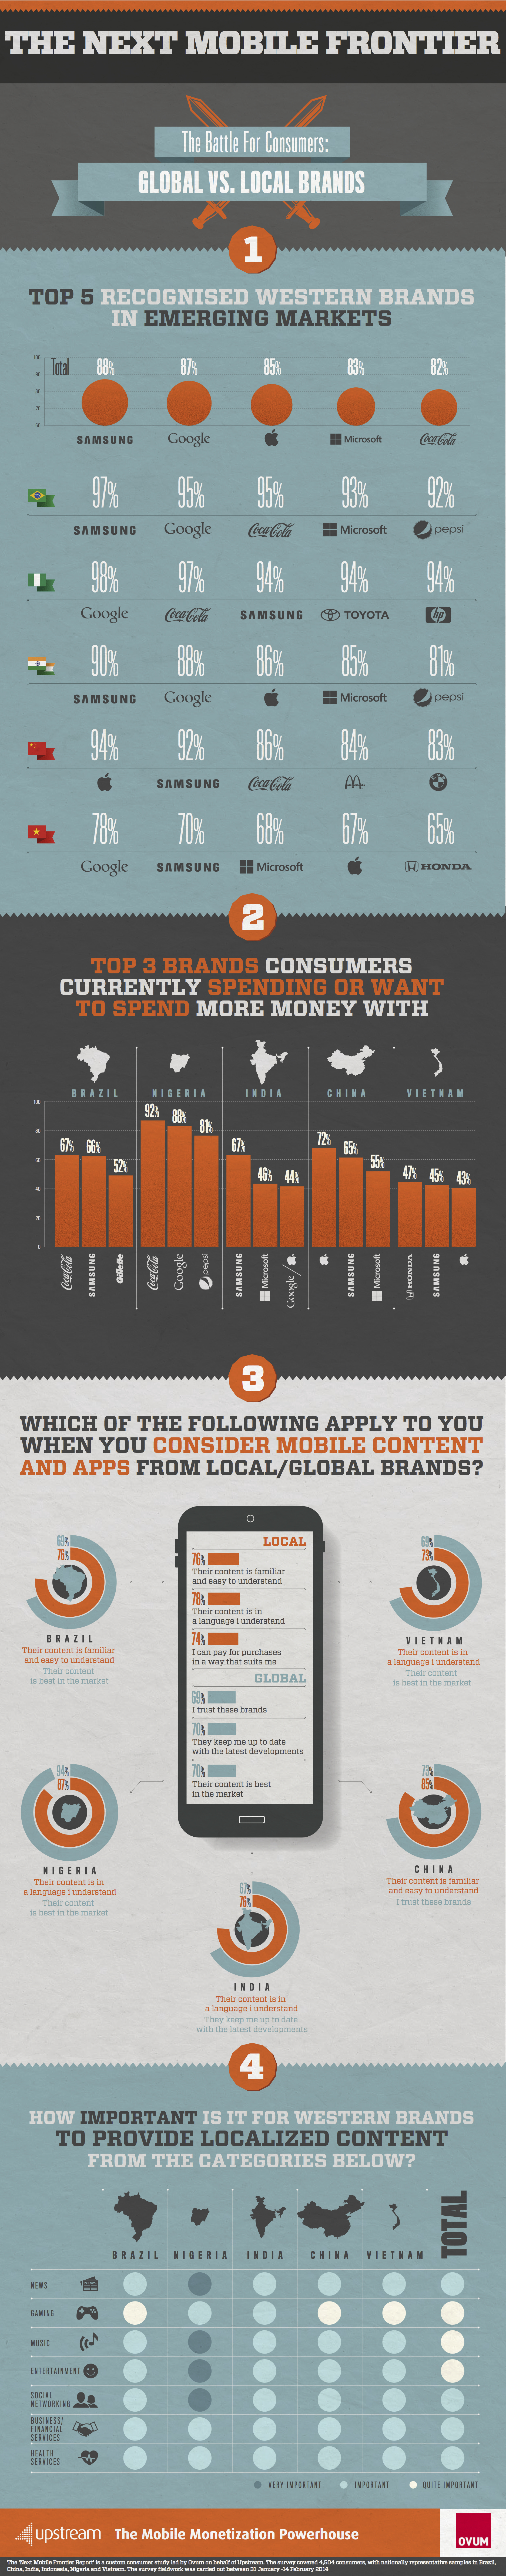 Infographic_local-global_2014 copy